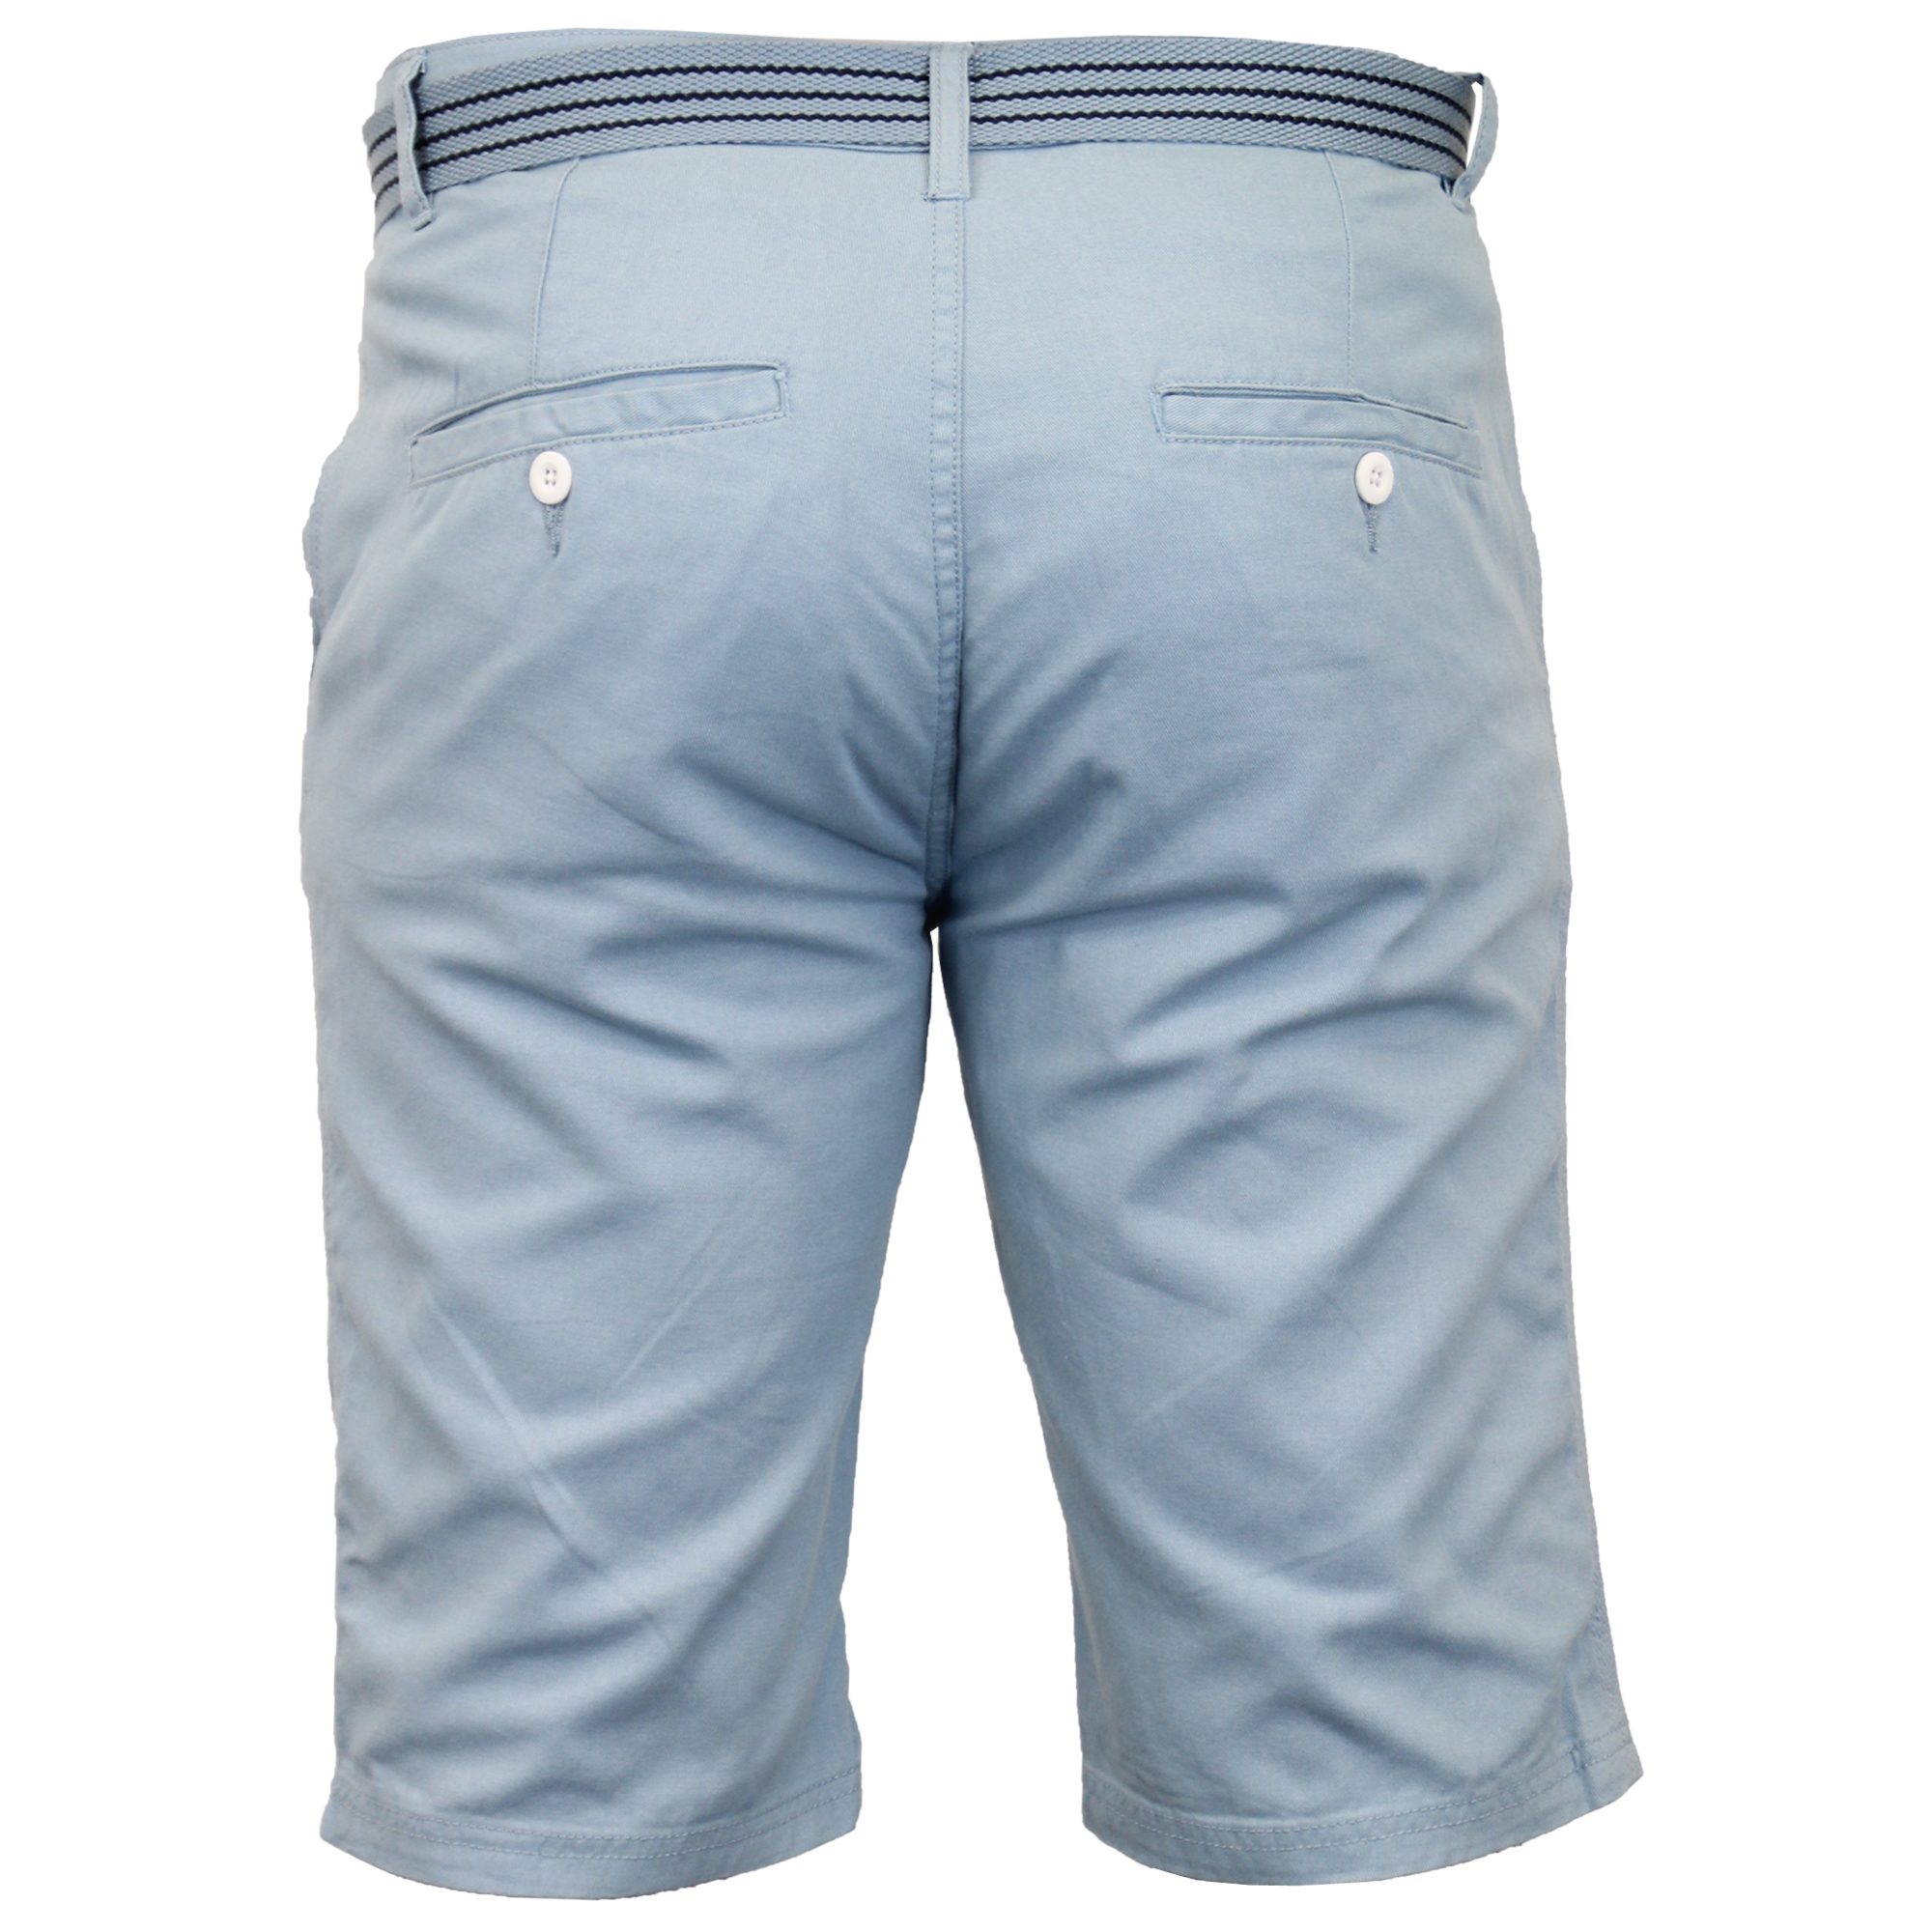 Mens-Chino-Shorts-Threadbare-Cotton-Oxford-Belted-Loyalty-amp-Faith-Seven-Series thumbnail 11